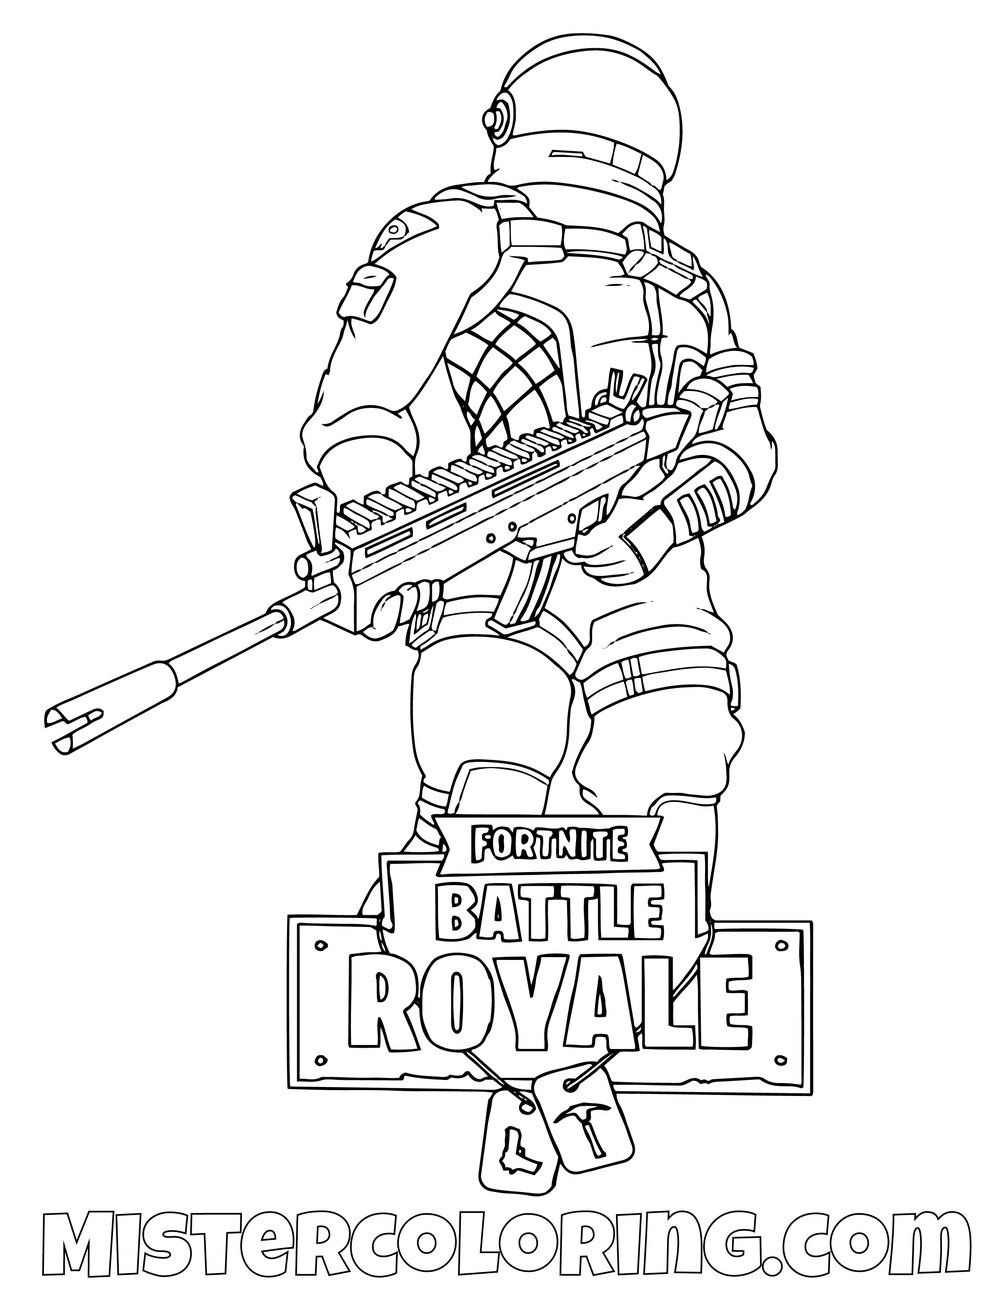 Free Dark Voyager With Scar Fortnite Coloring Page For Kids